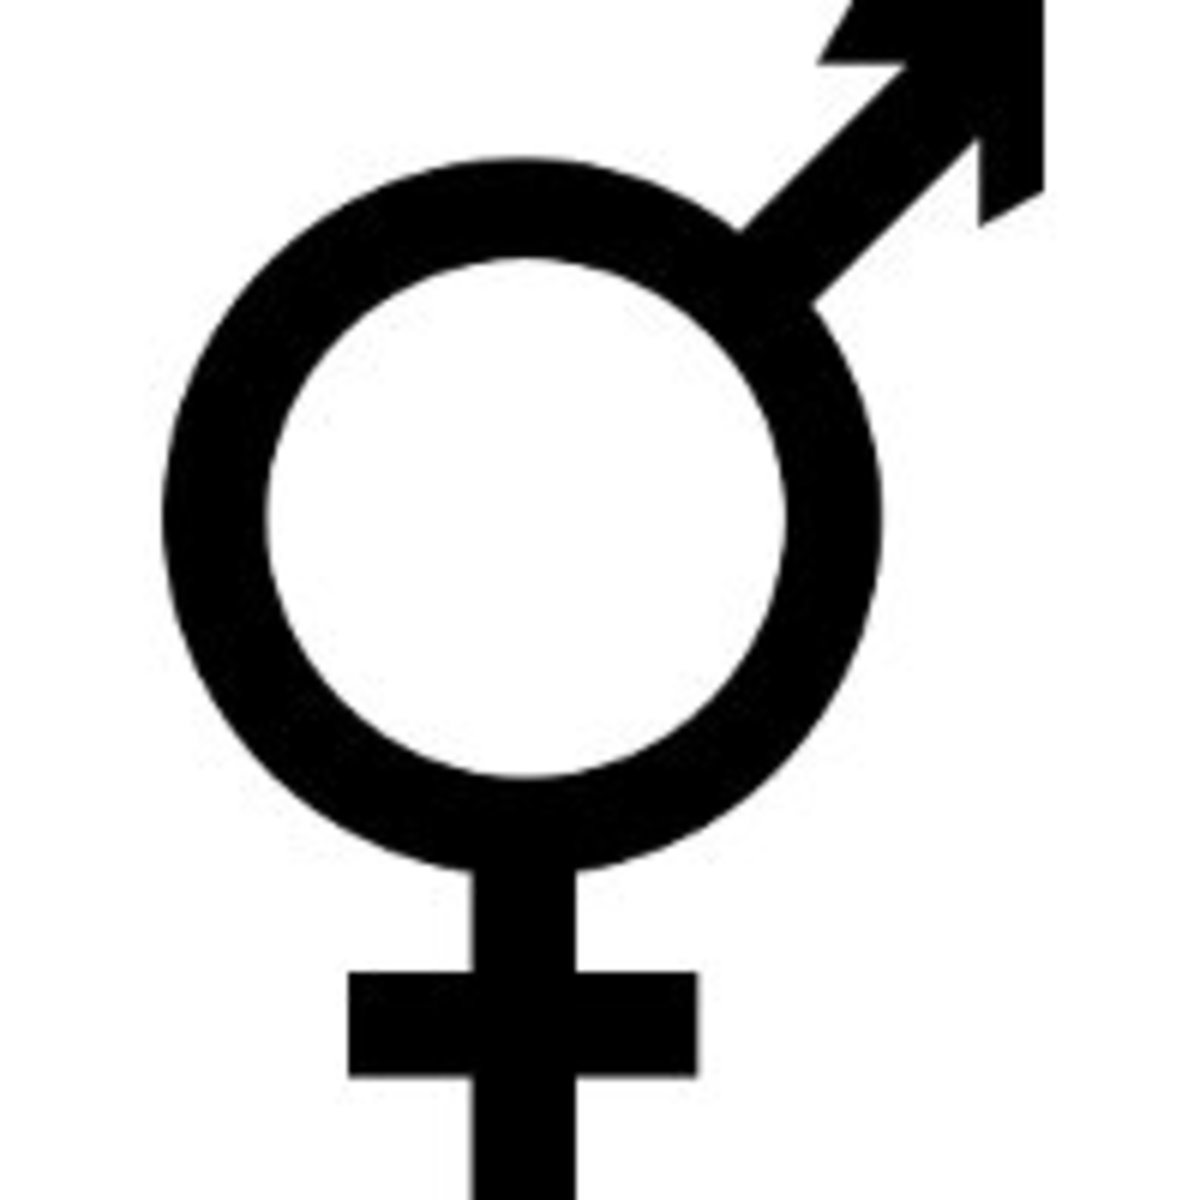 One variant of the intersex symbol